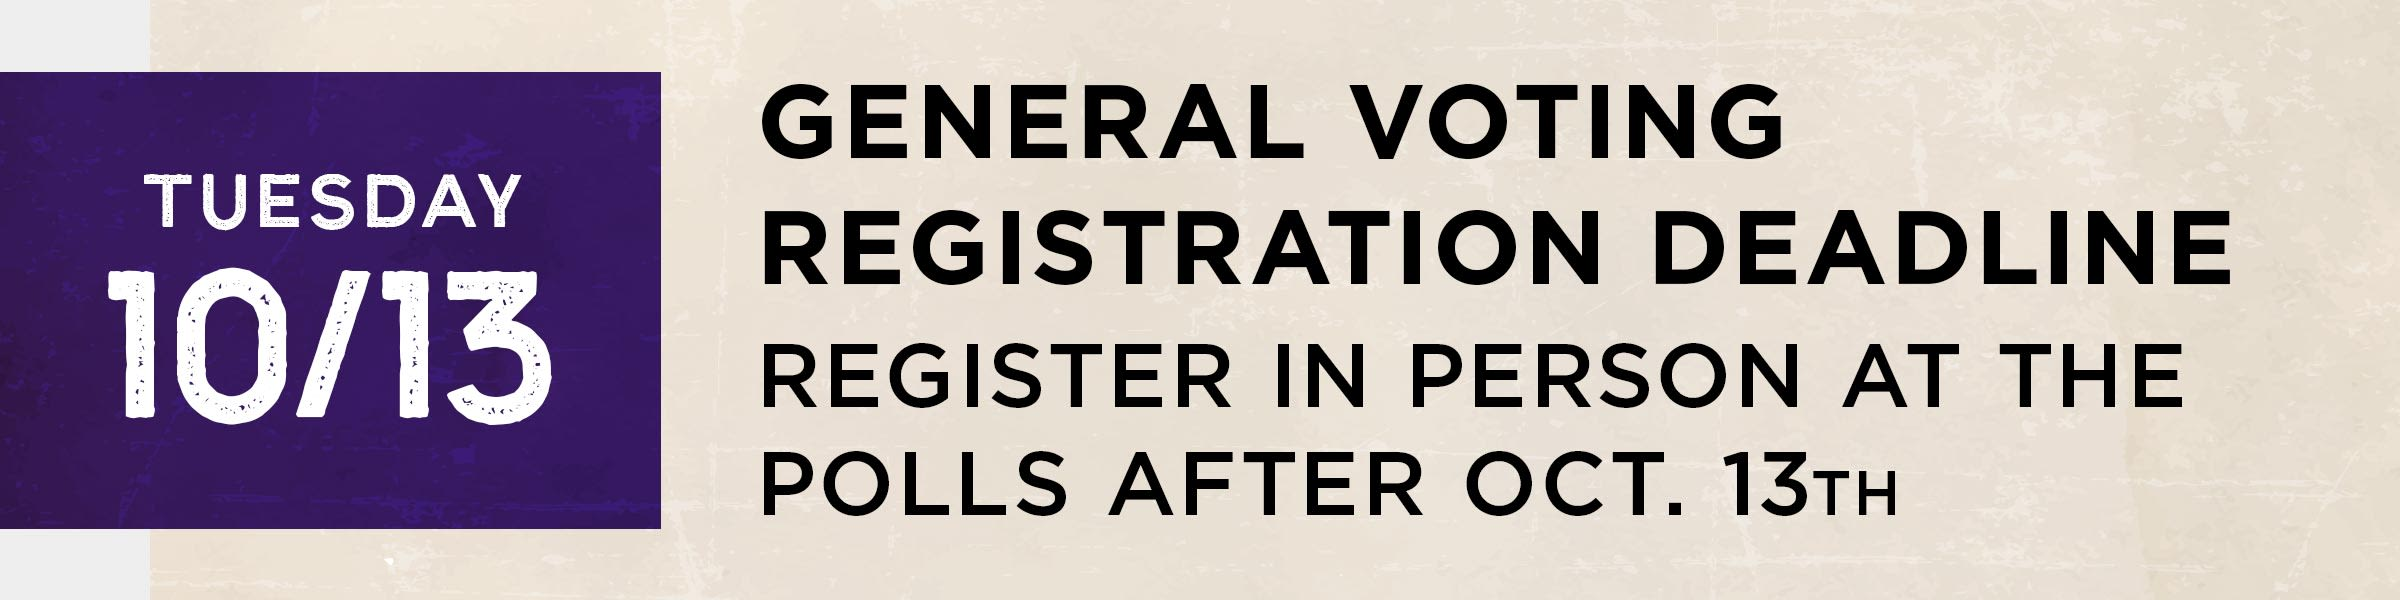 Tuesday, October 13  General voting registration deadline. Register in person at the polls after Oct. 13th